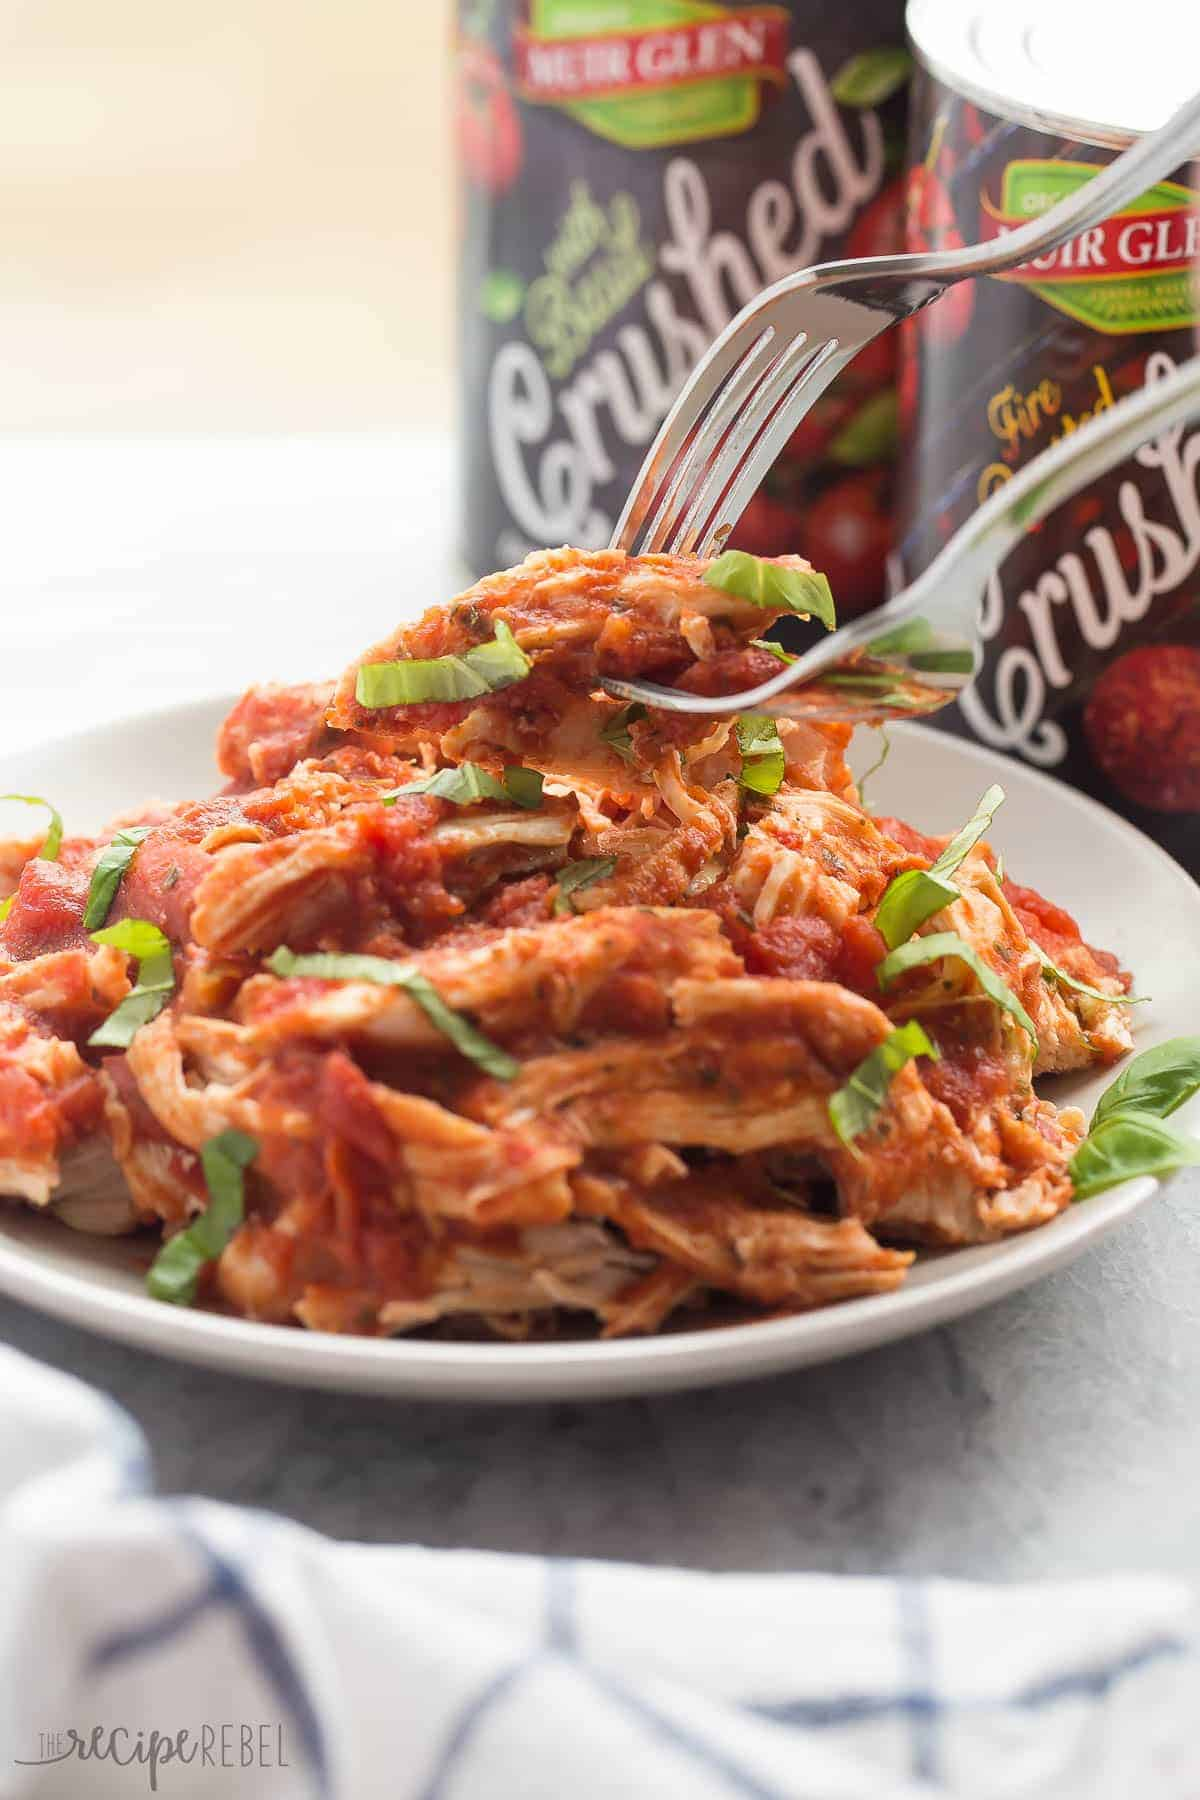 A SUPER simple, flavorful meal with just a few ingredients! These Slow Cooker Italian Chicken Sandwiches are perfect for picnics or weeknights! Gluten free and paleo options.